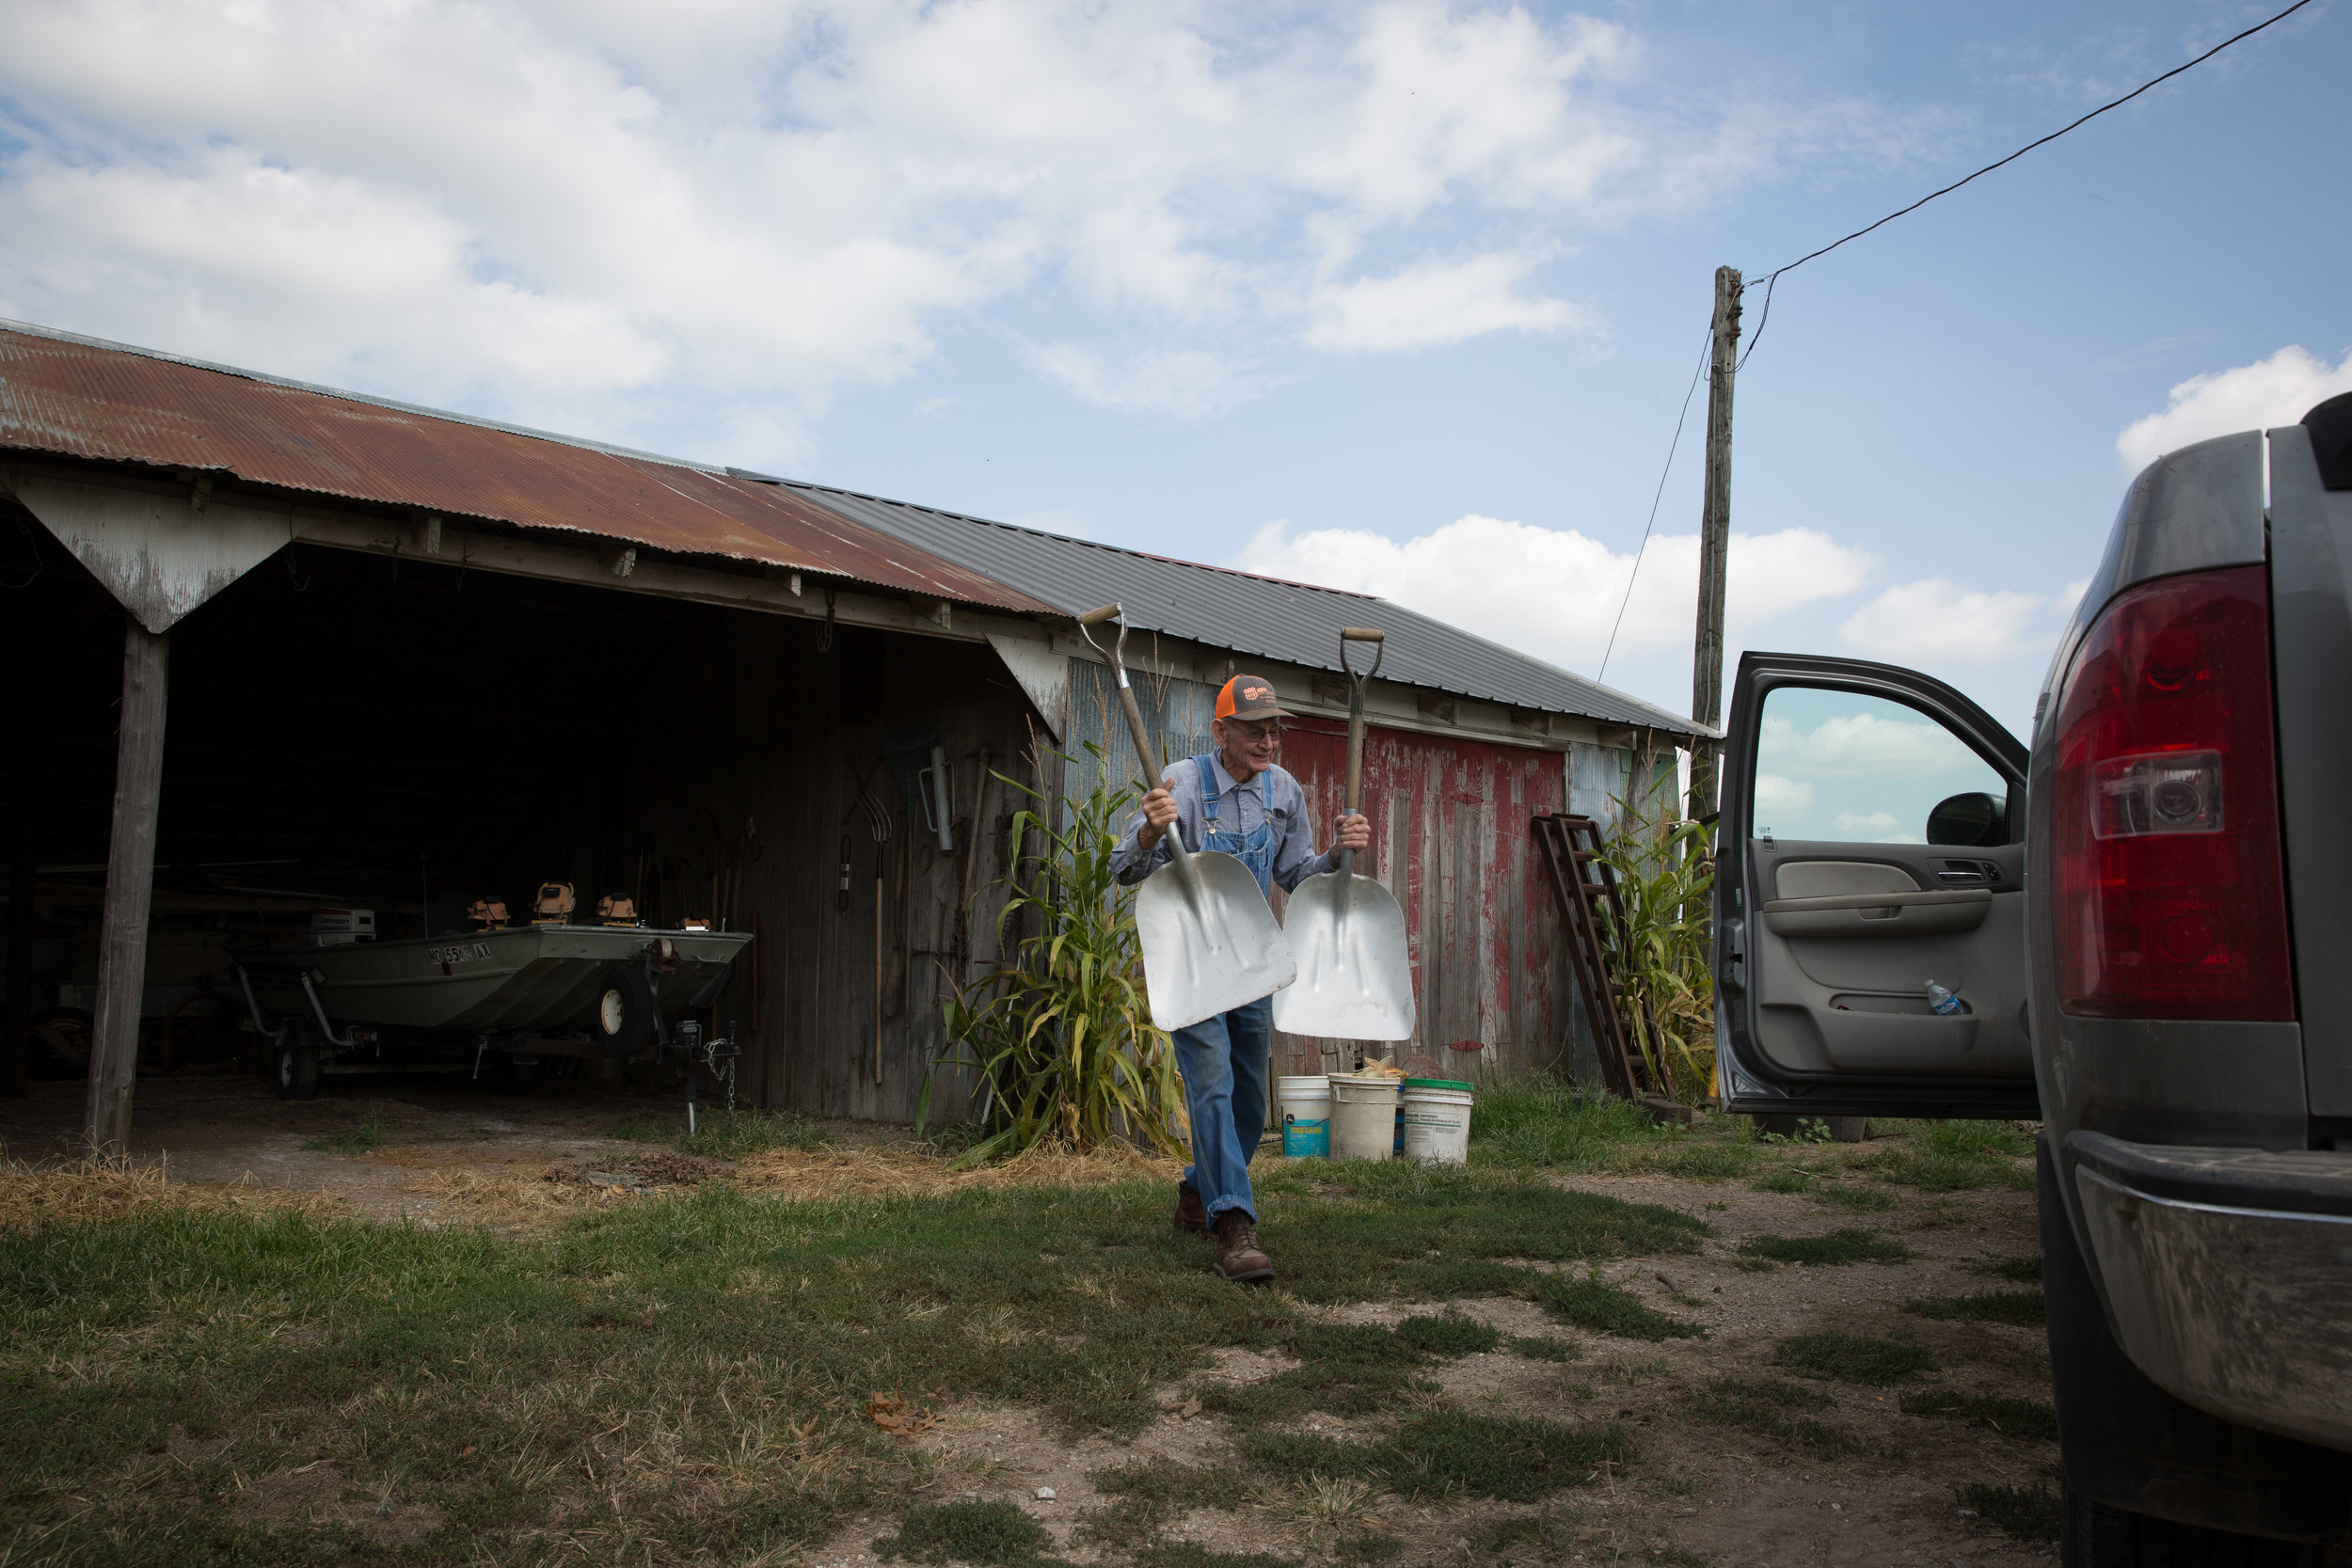 """""""Double shovel, baby,"""" Carl laughs as he grabs shovels for himself and son Mike.After retiring from the service station business in 1995 Carl began working on his son's 350-acre farm in Barnett, Mo.The two of them tend the farm together daily without any outside assistance."""